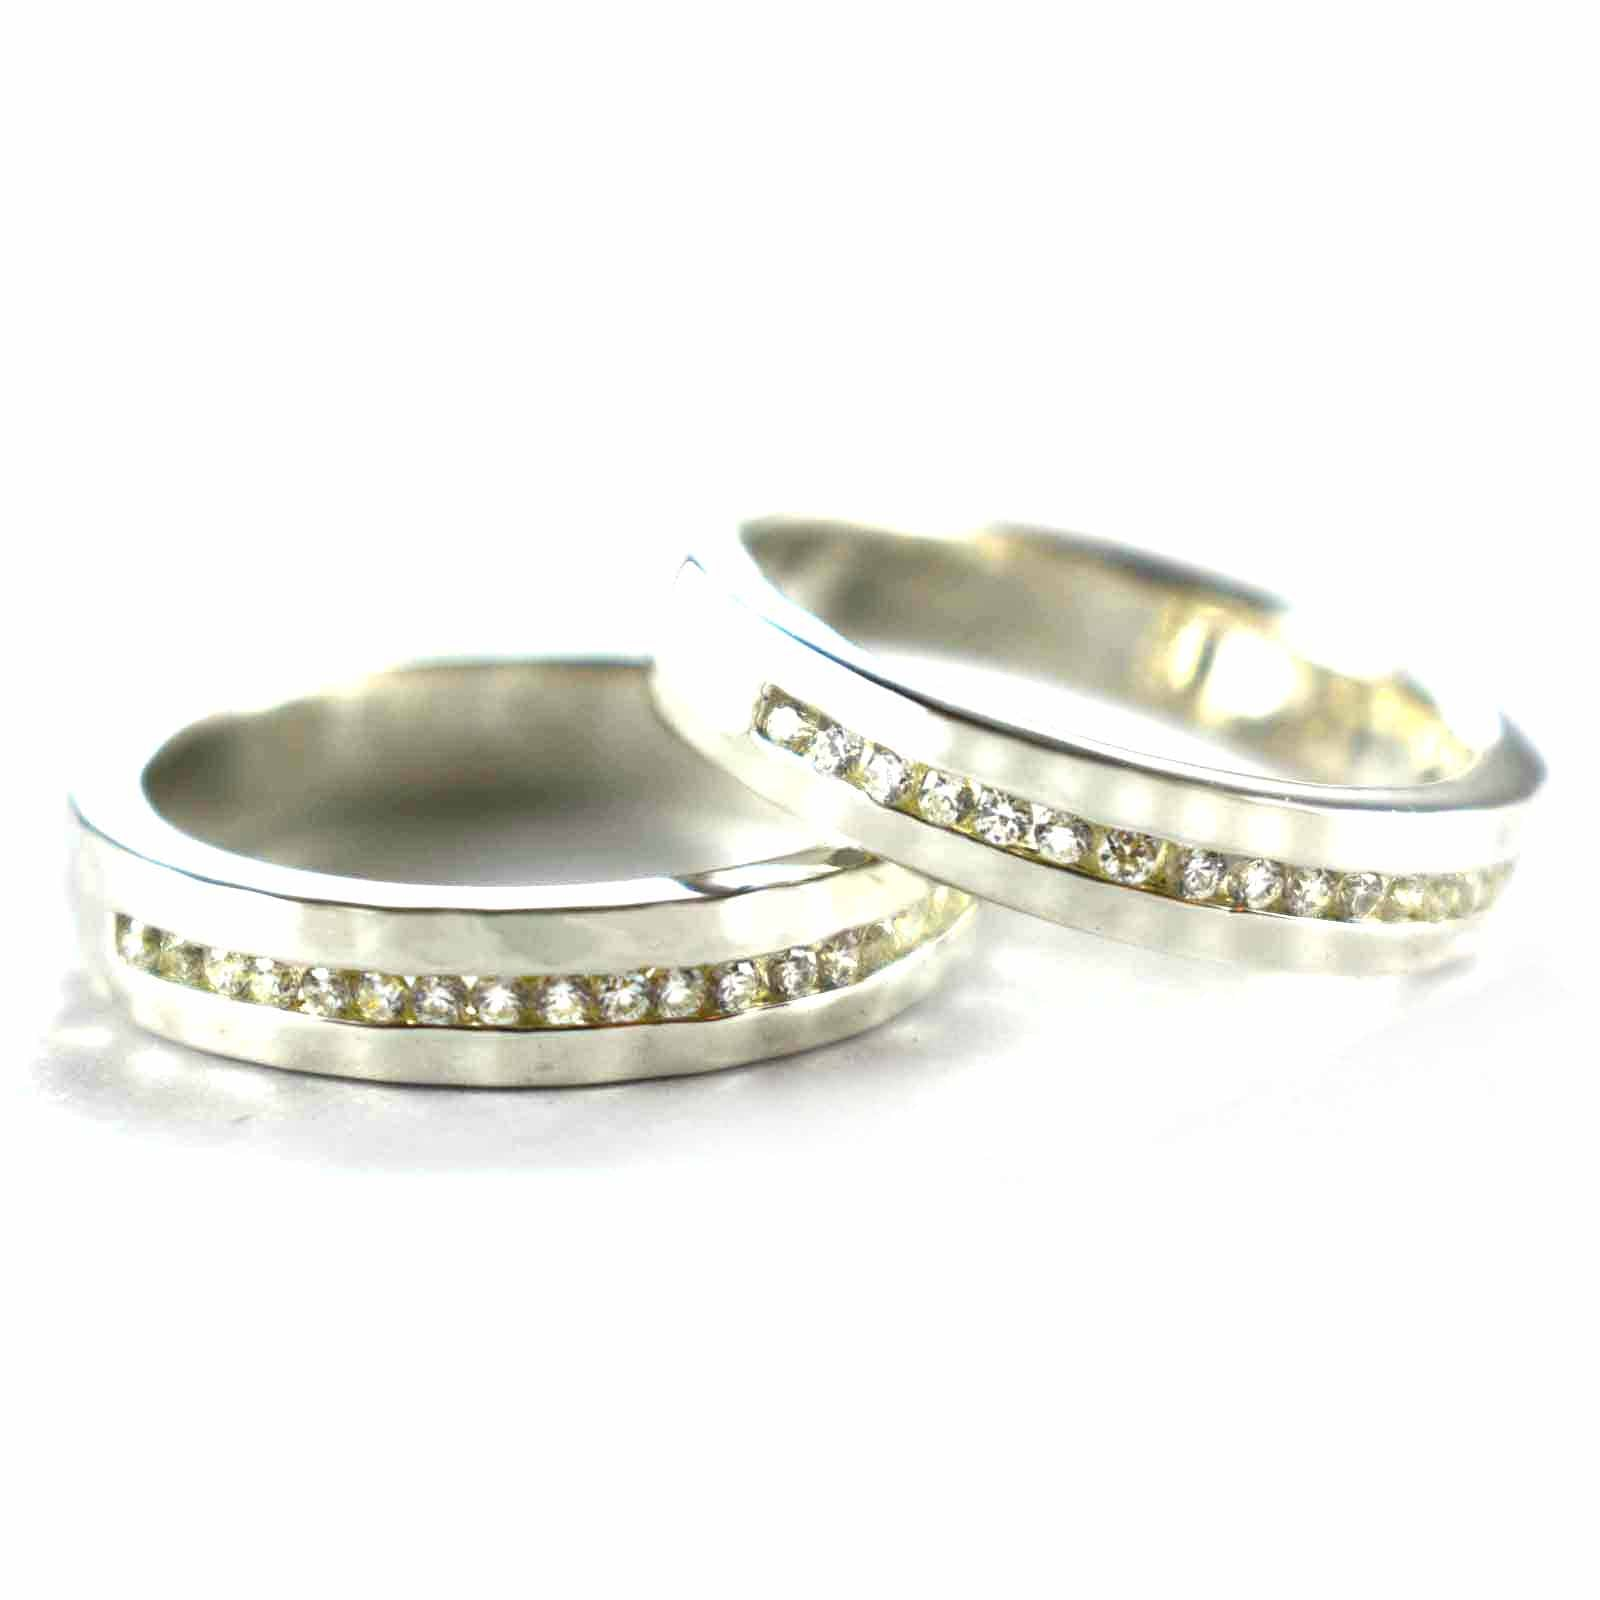 size series set amazon titanium rings engagement hers shape athena his dp heart couple selectable band jewelry matching com wedding